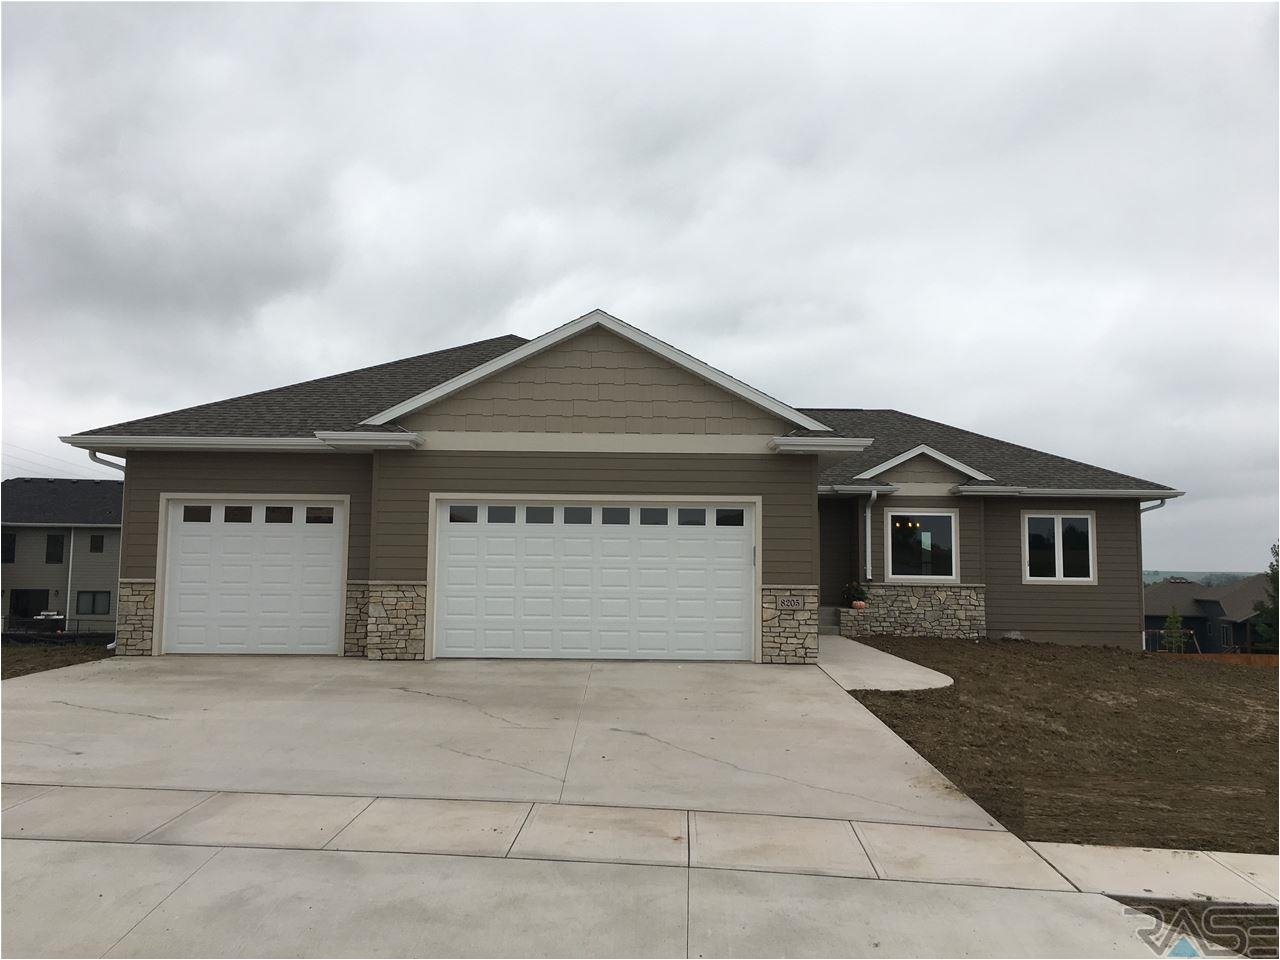 address sioux falls sd 57110 type single family subdivision willow ridge addn bedrooms 2 bathrooms 2 hegg realtors